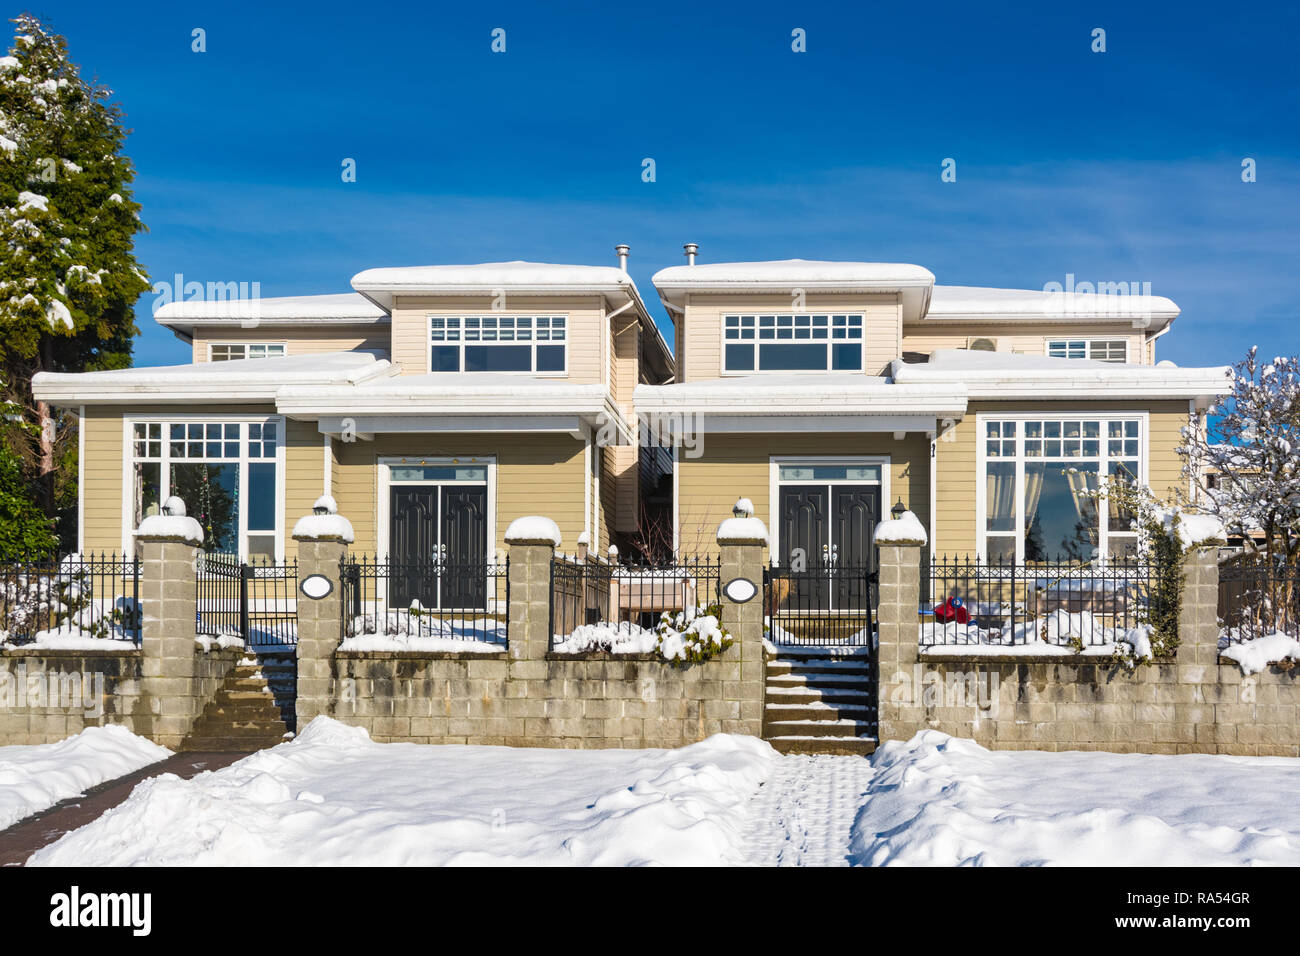 Residential duplex house with front yard in snow on winter sunny day in Canada - Stock Image